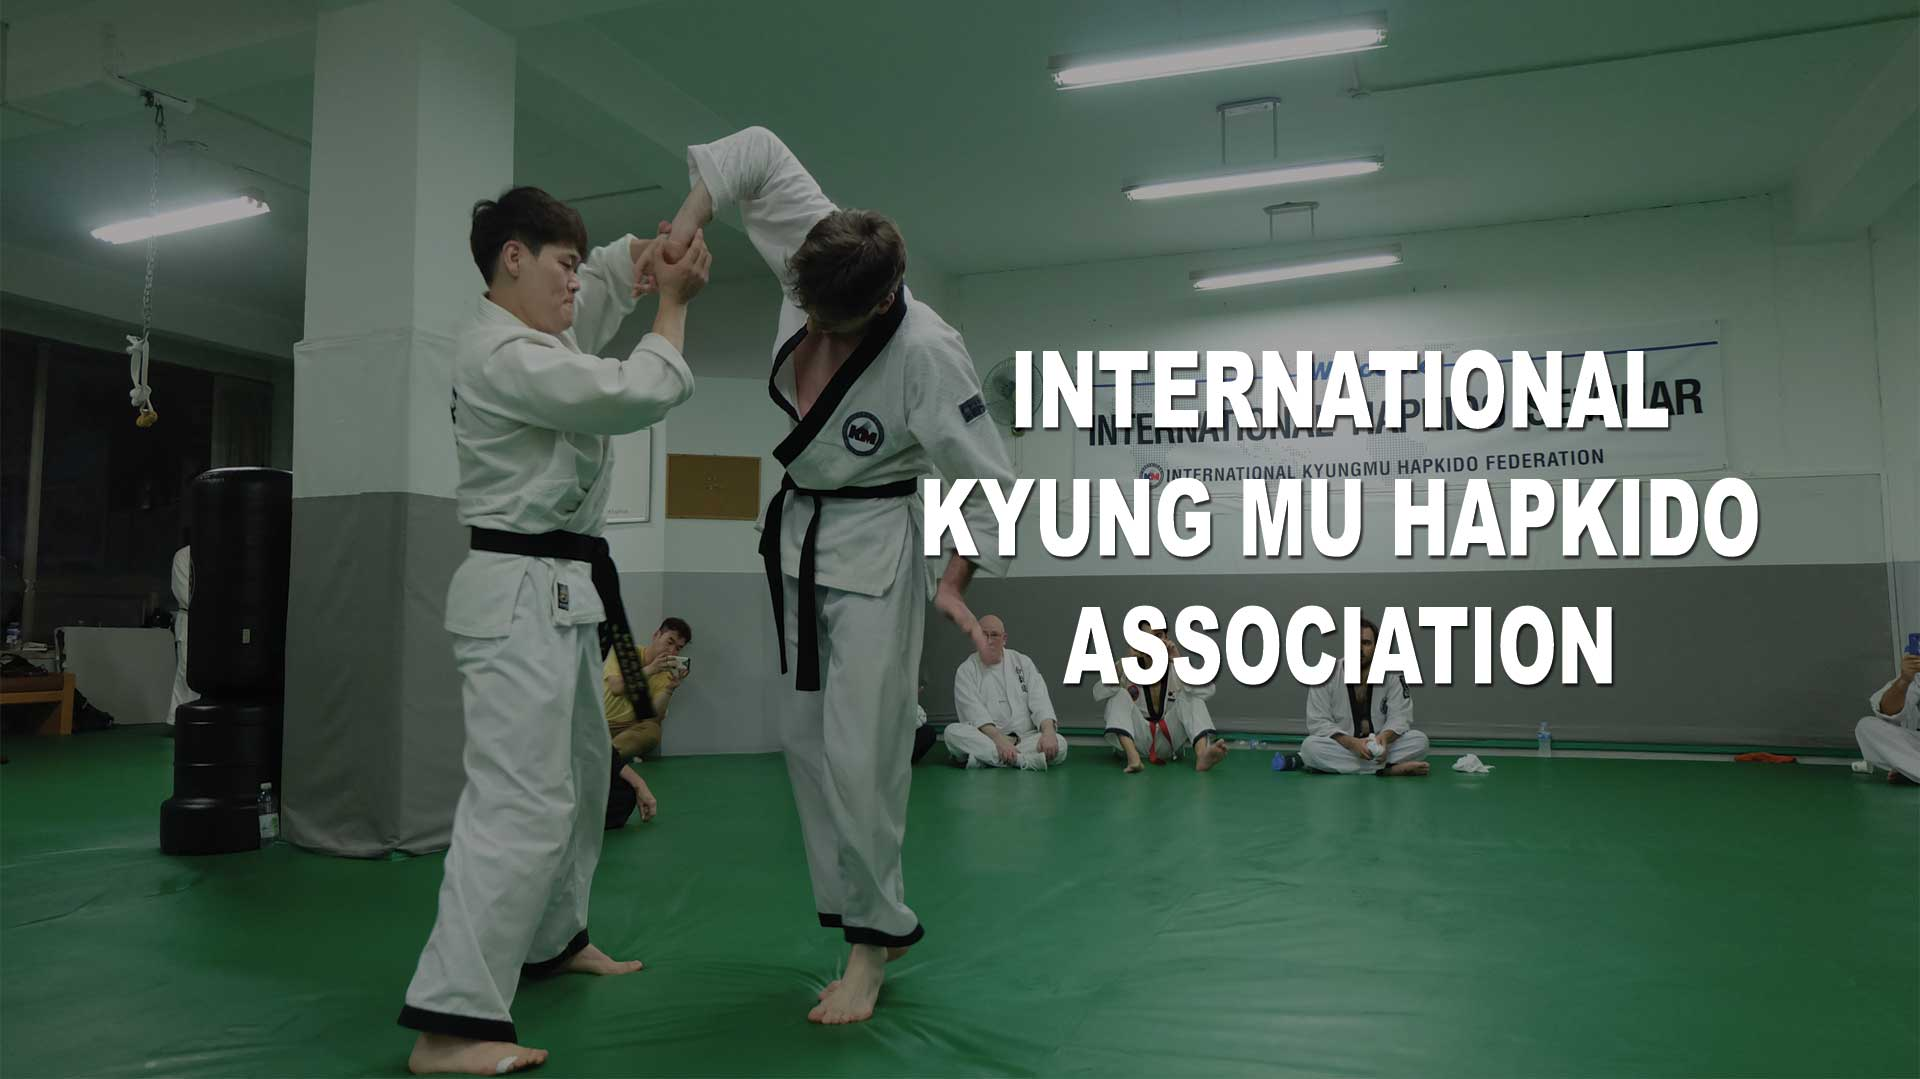 kyung mu kwan hapkido association